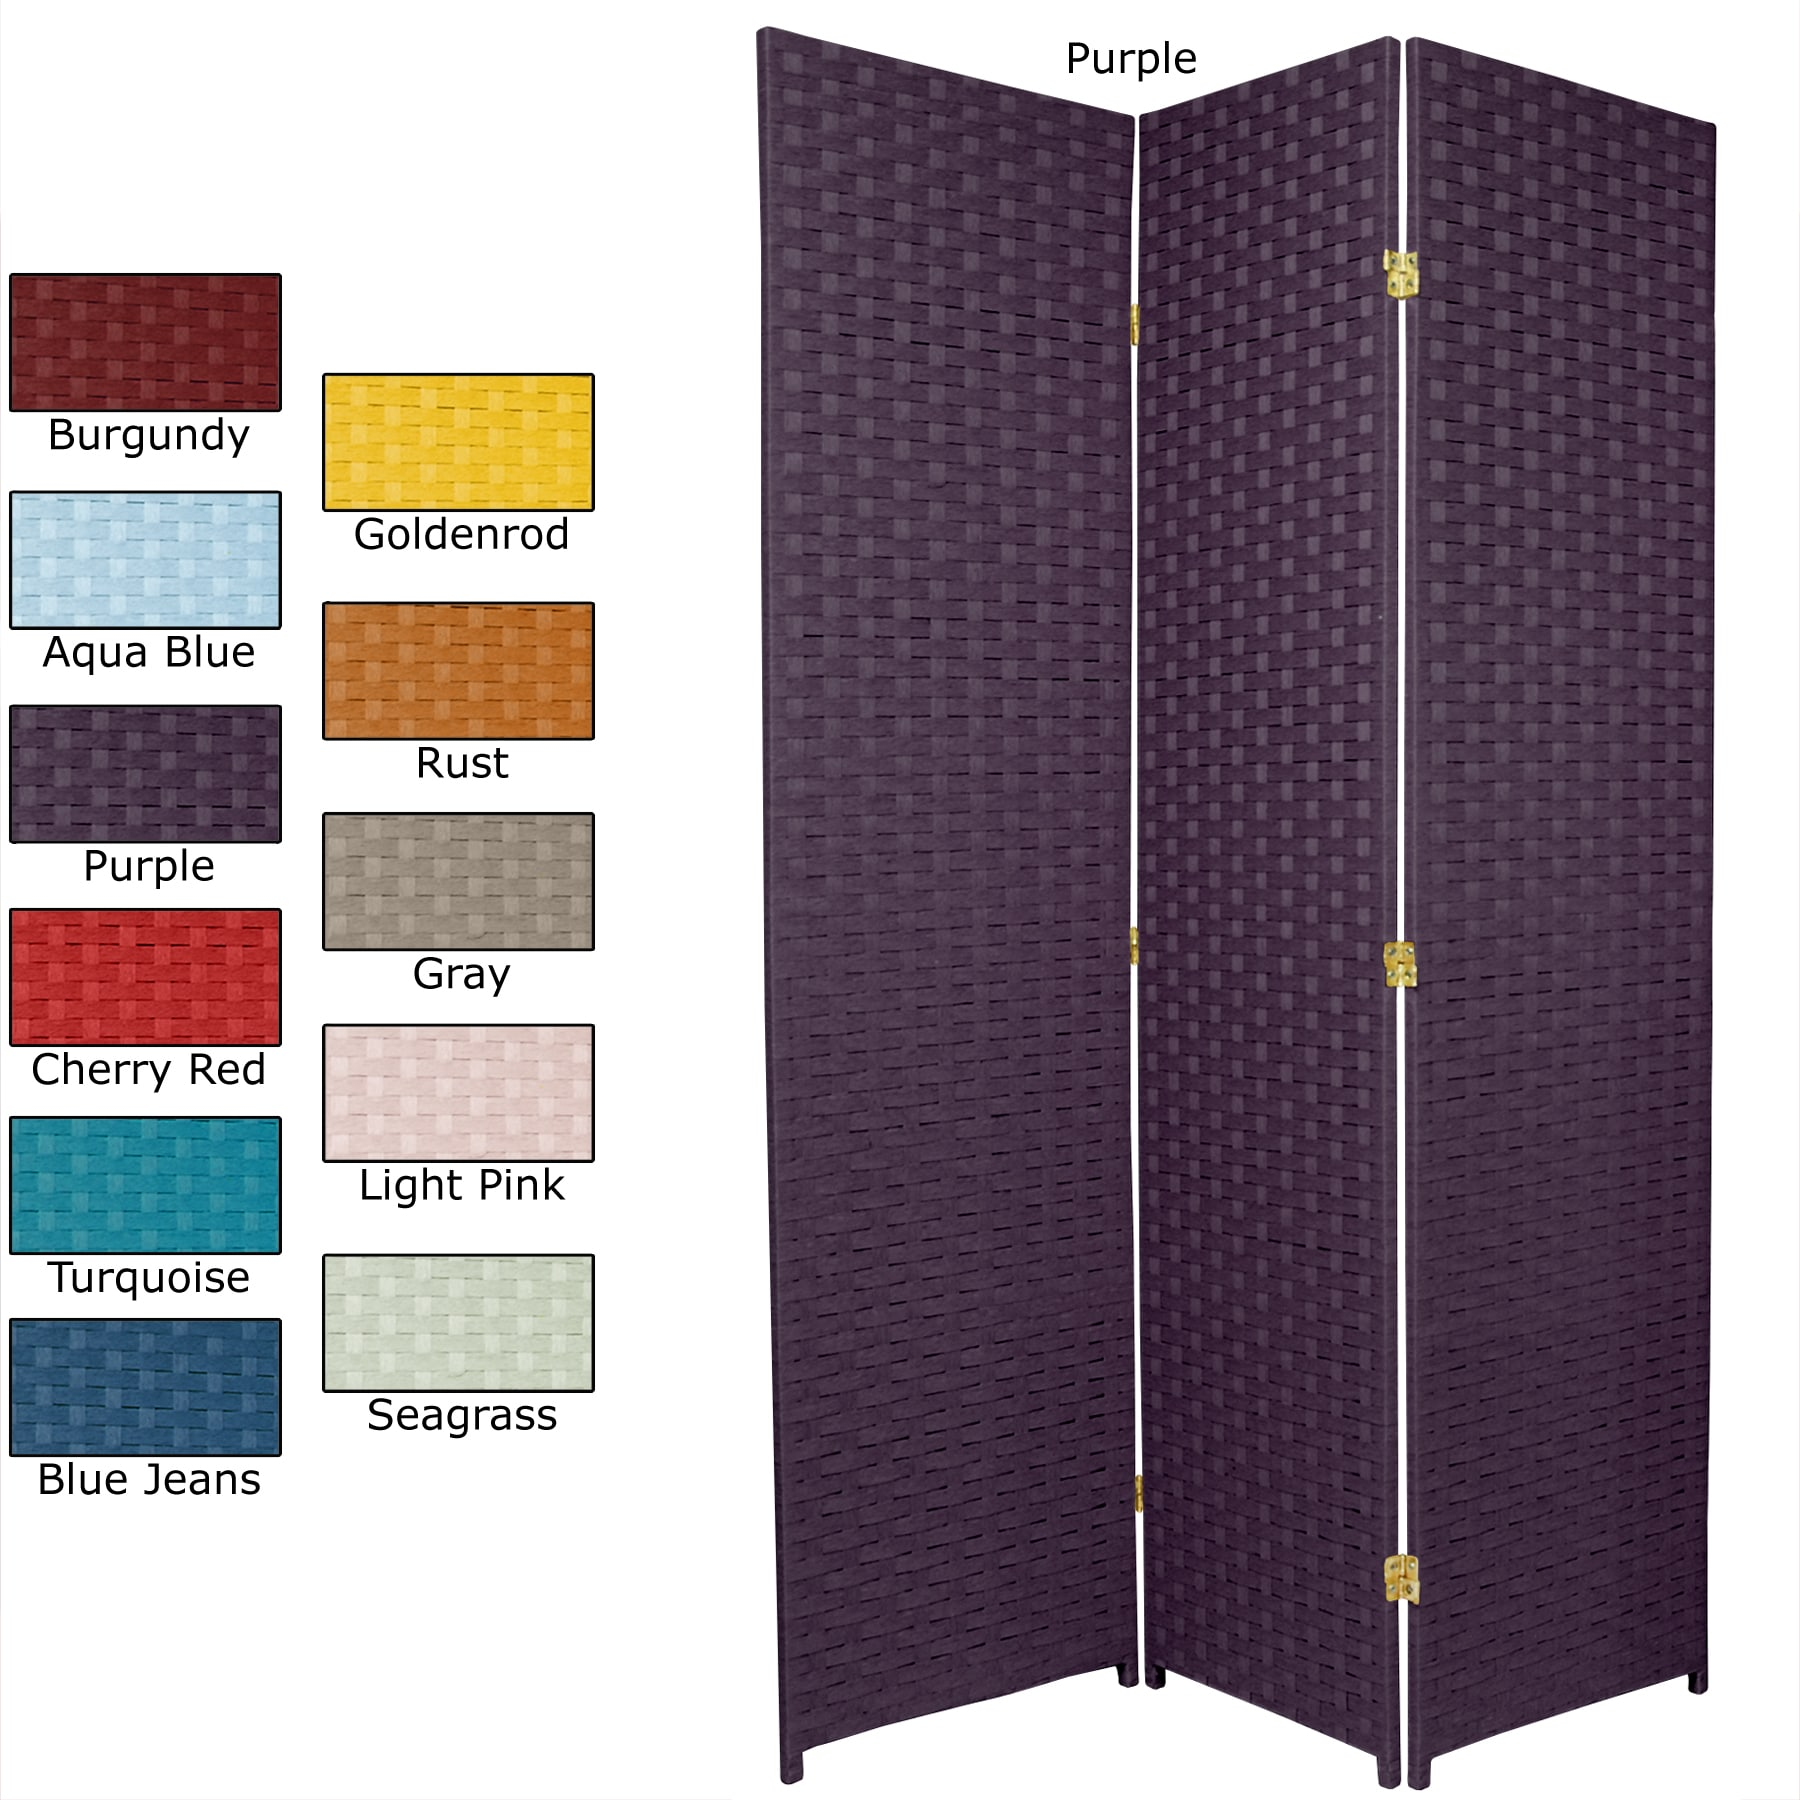 6-foot Tall Special Edition Woven Fiber Room Divider (China)